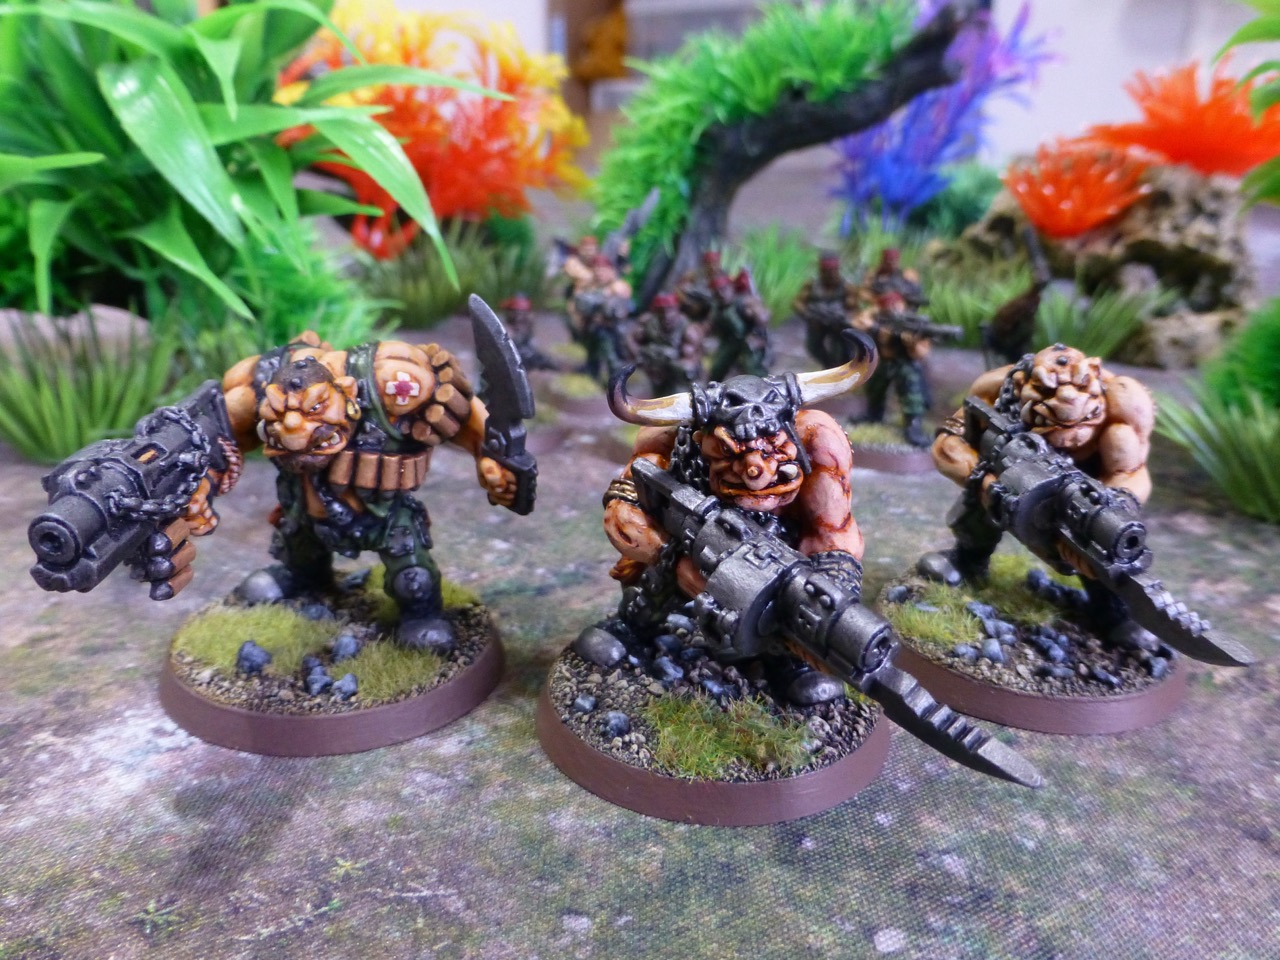 Three Ogryns in a jungle of vibrant plants